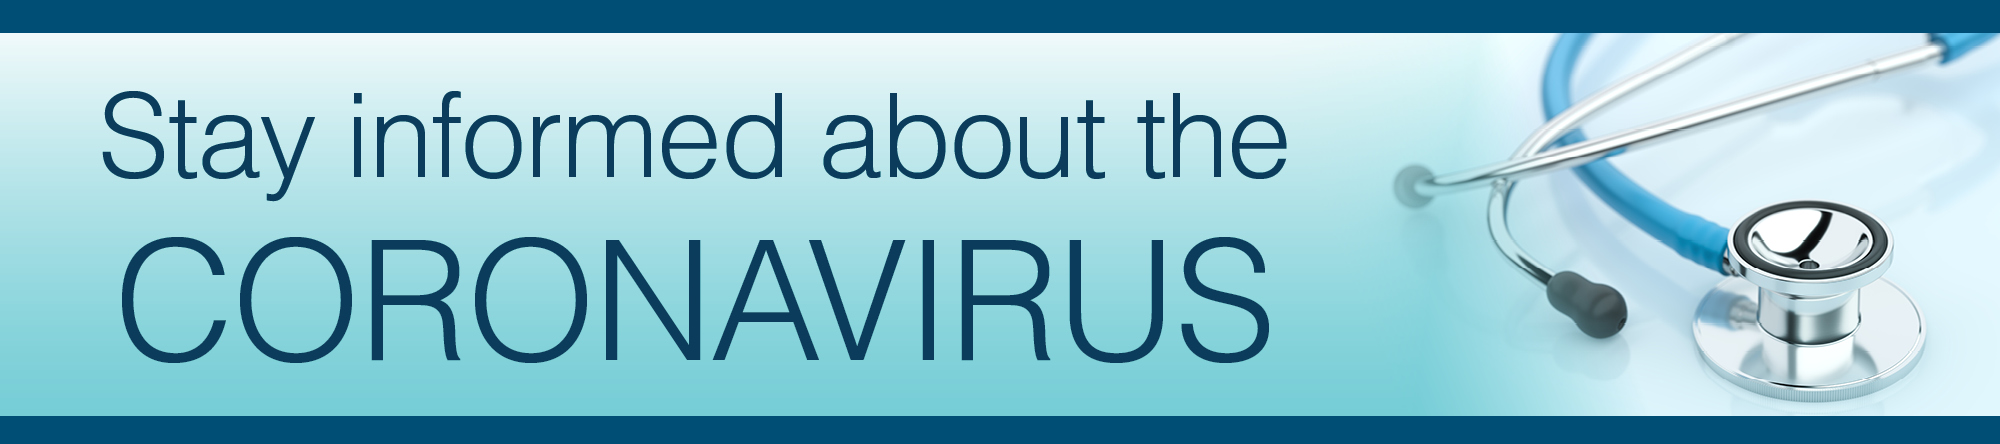 Stay Informed about the Coronavirus